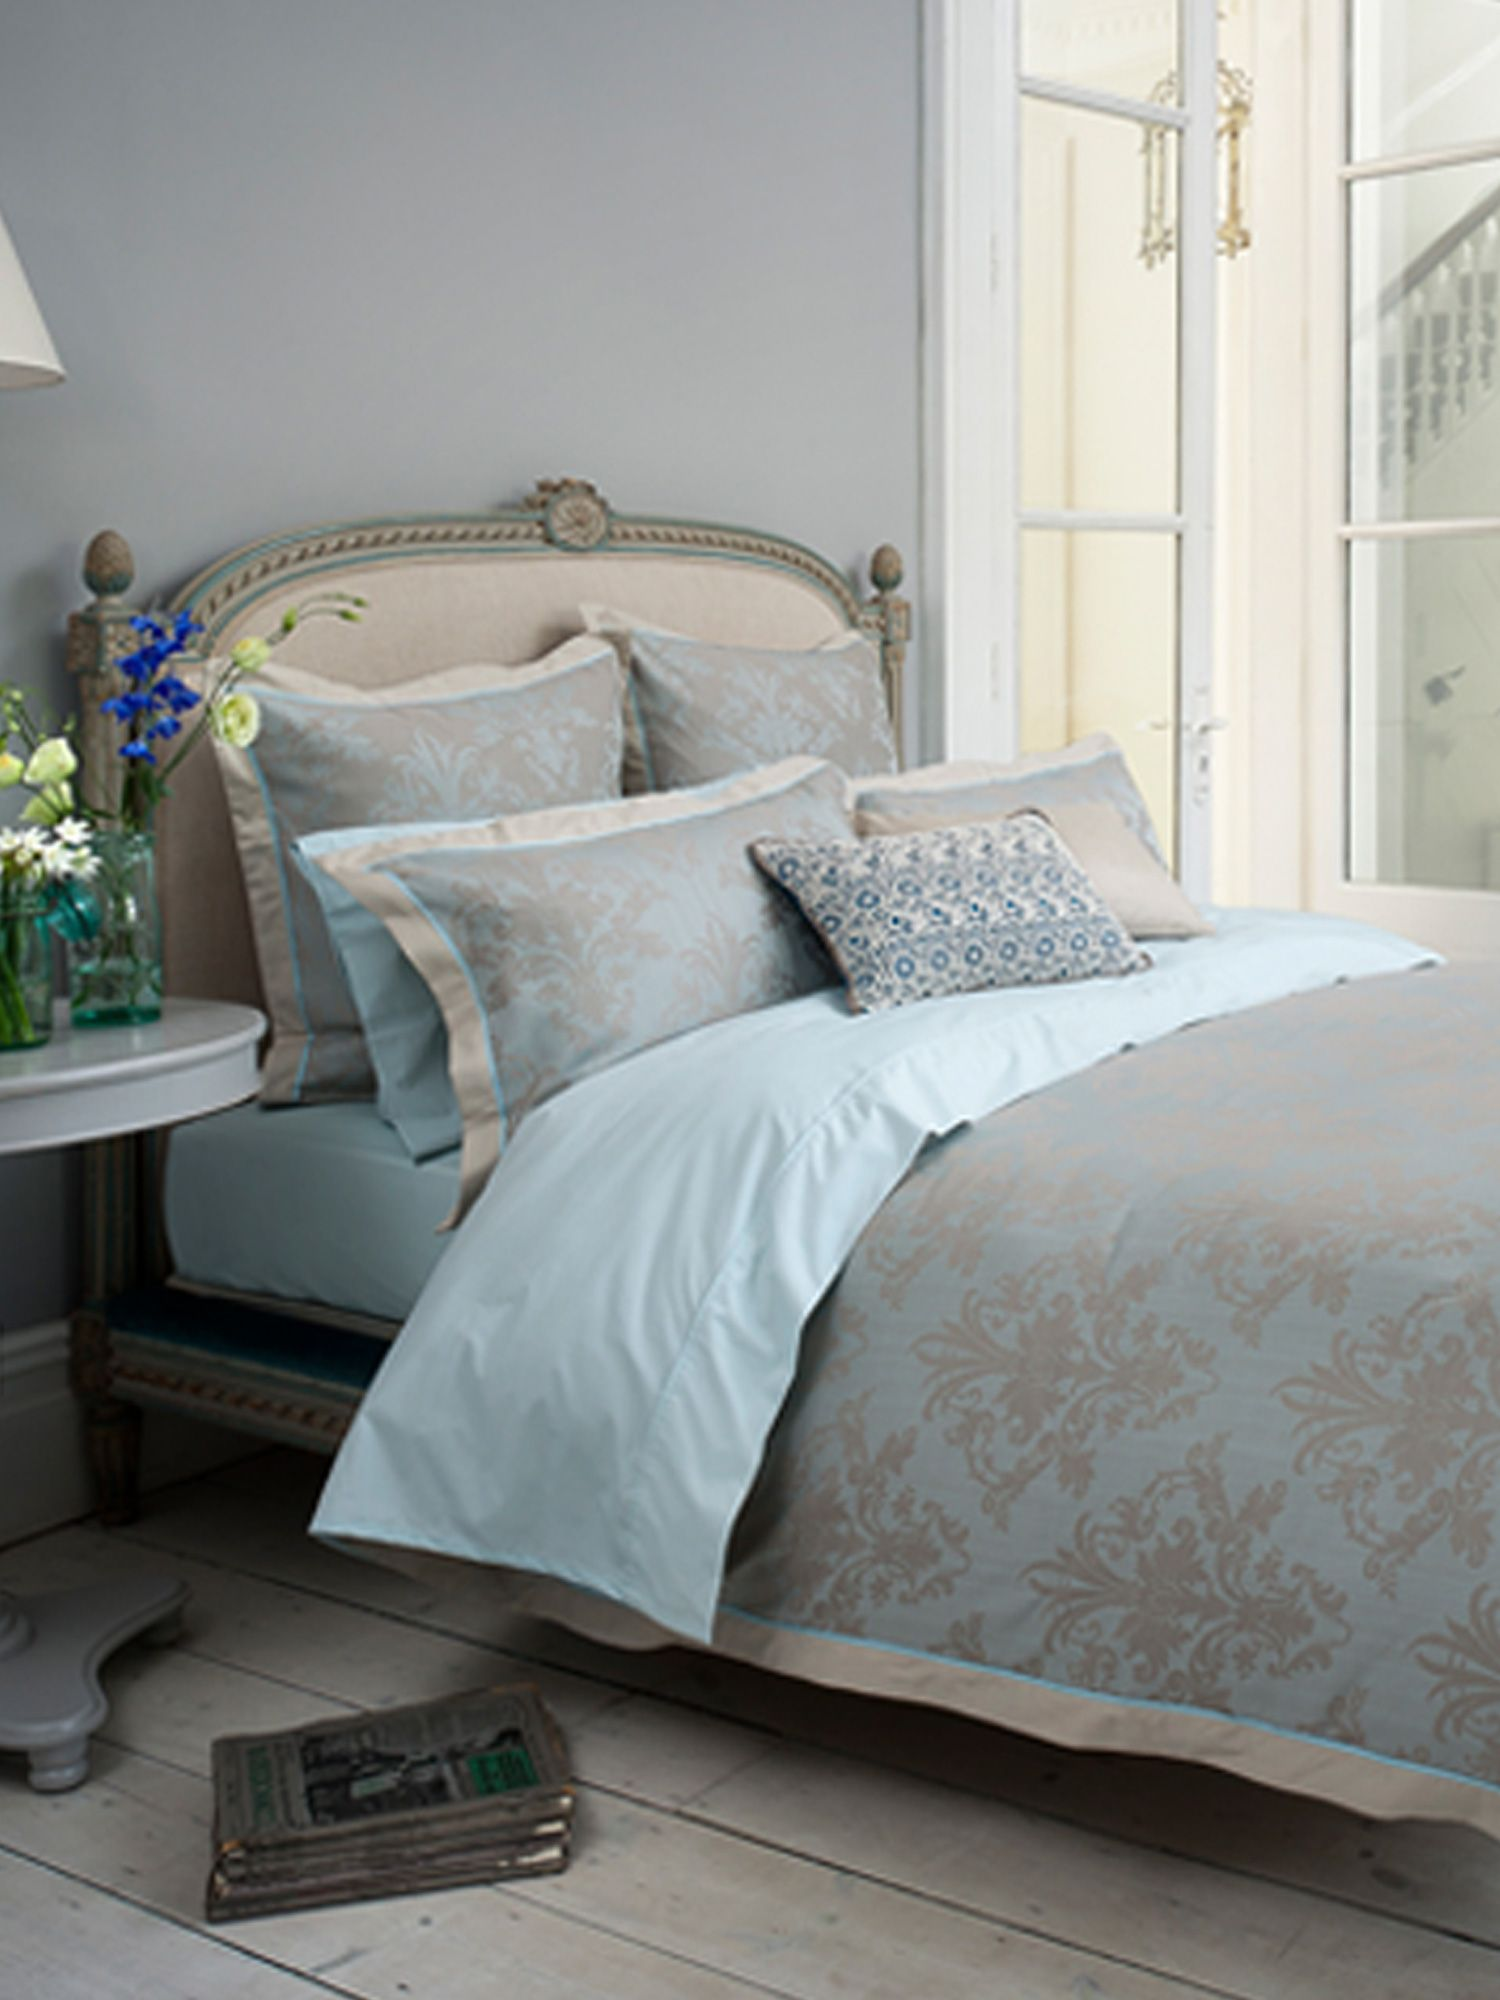 Fitzroy damask bed linen range in oyster